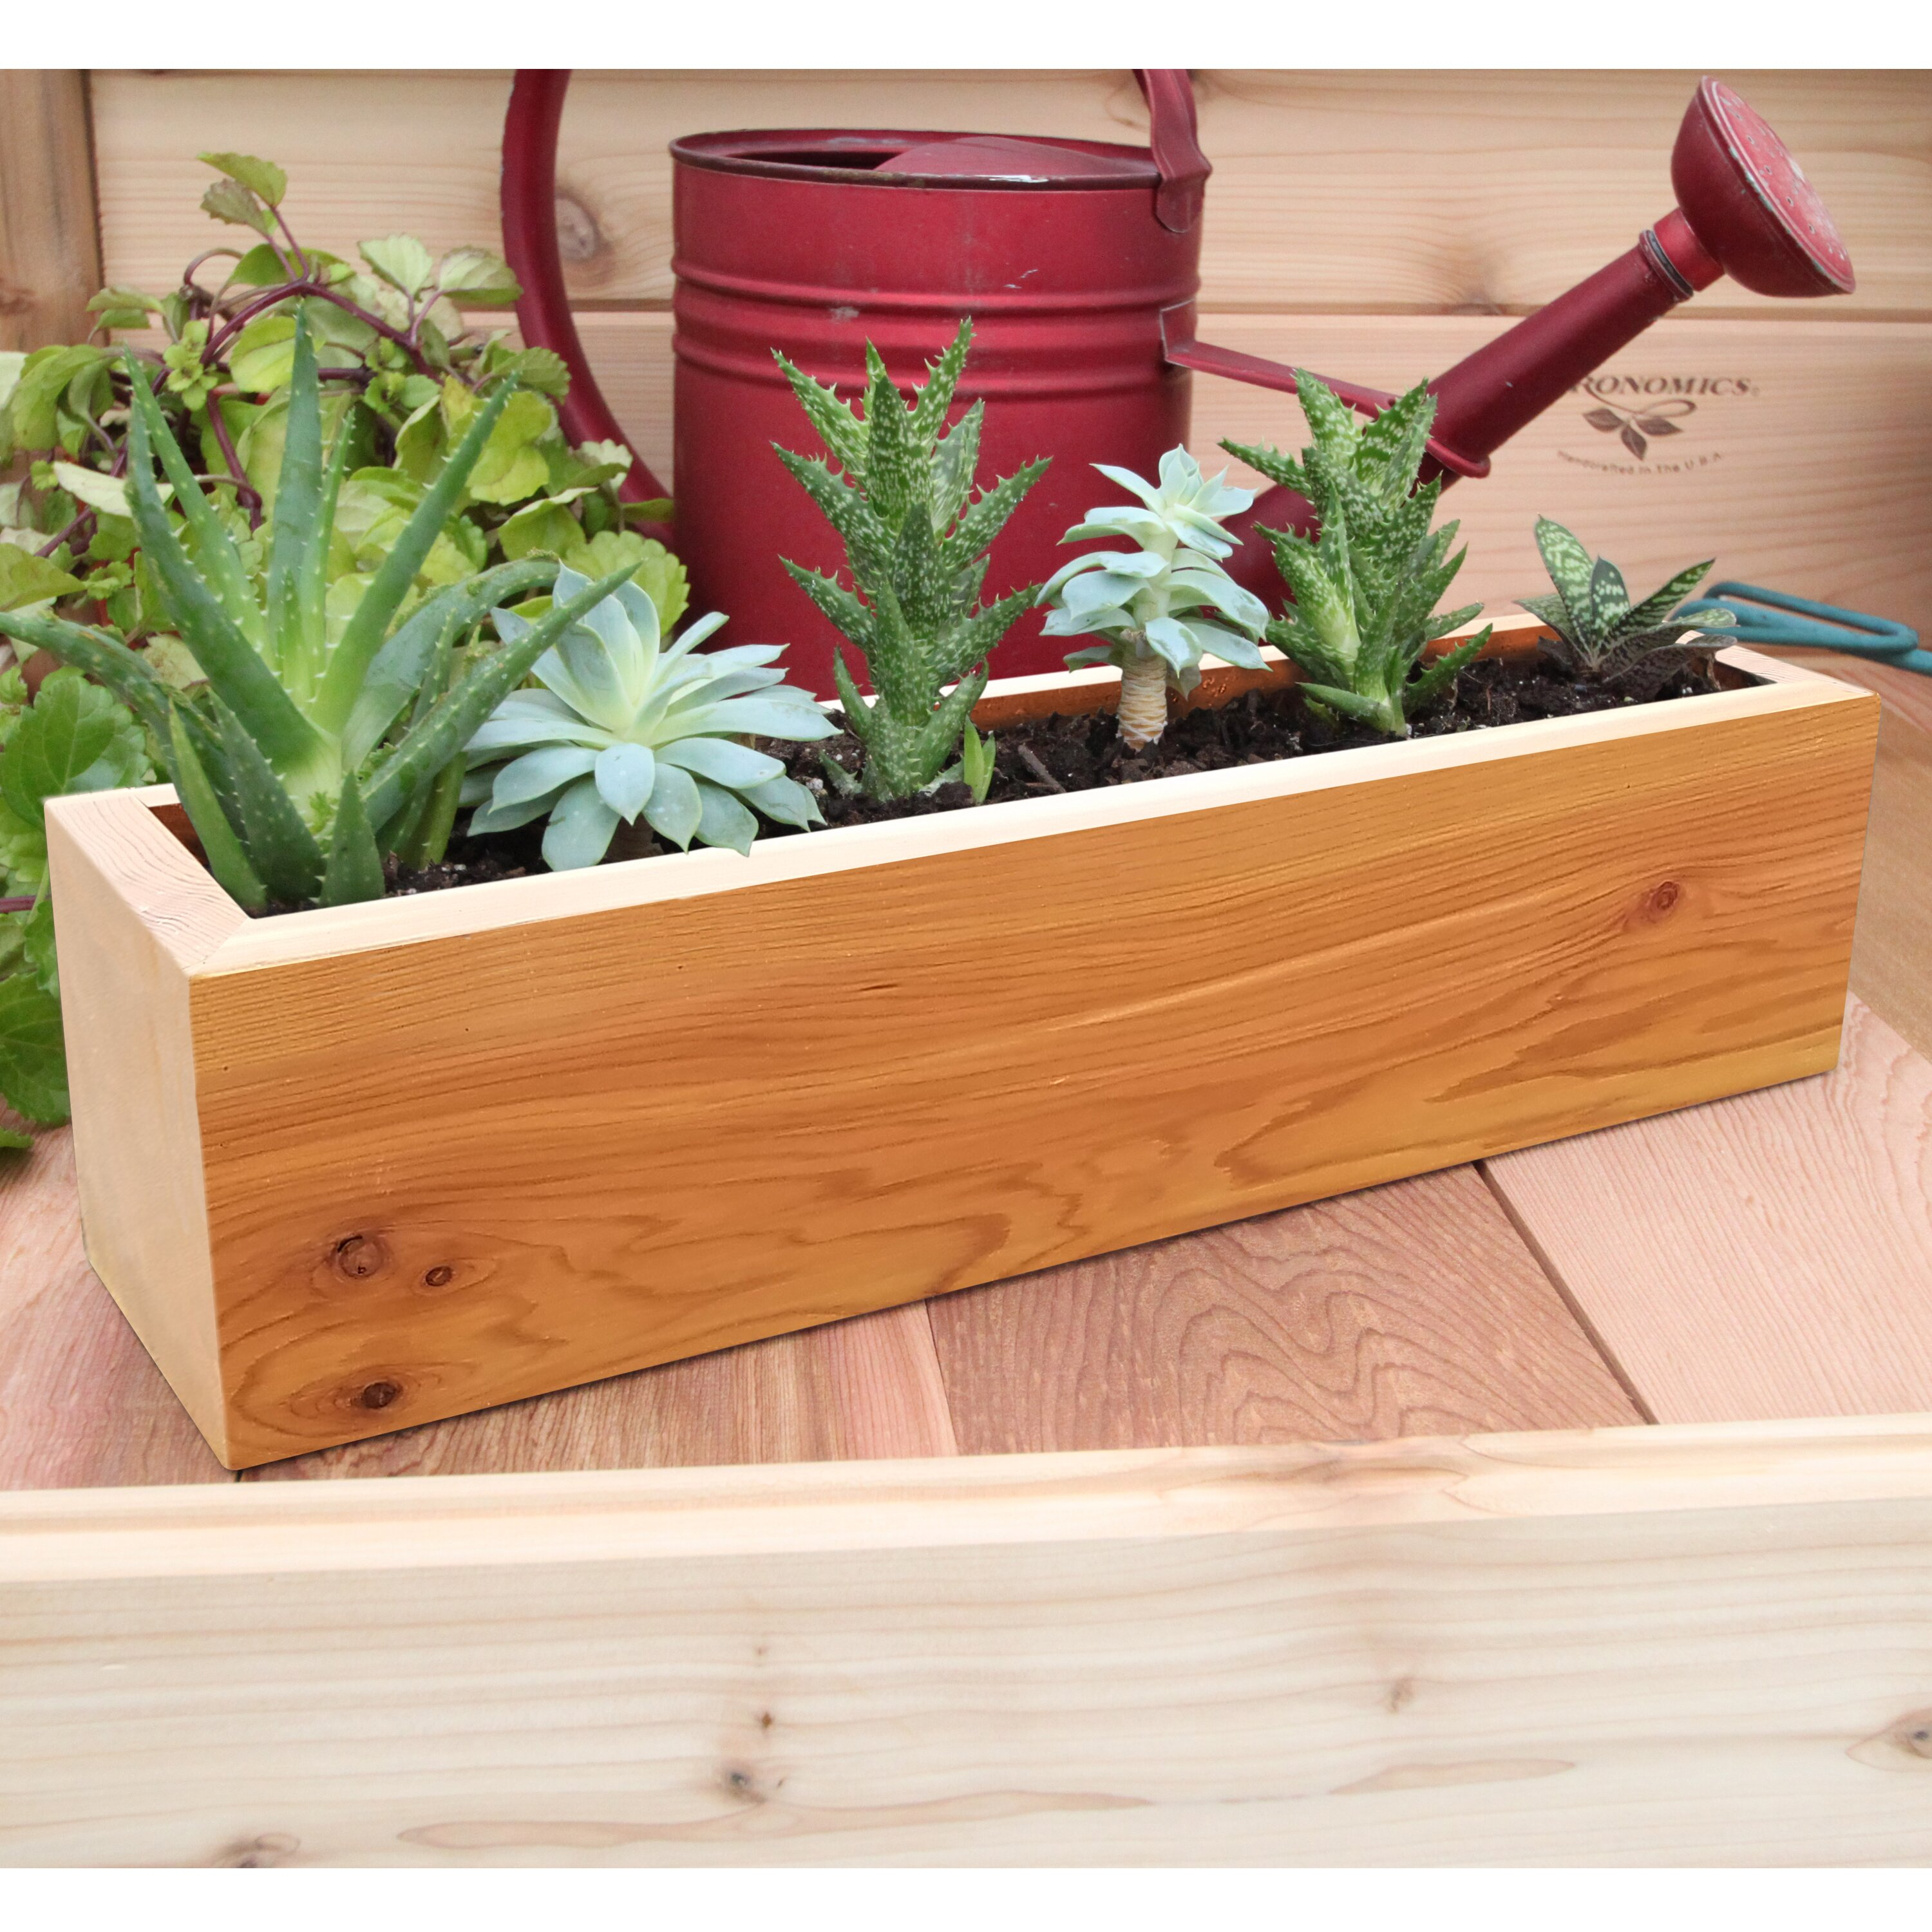 Gronomics succulent rectangular pot planter reviews for Wayfair garden box